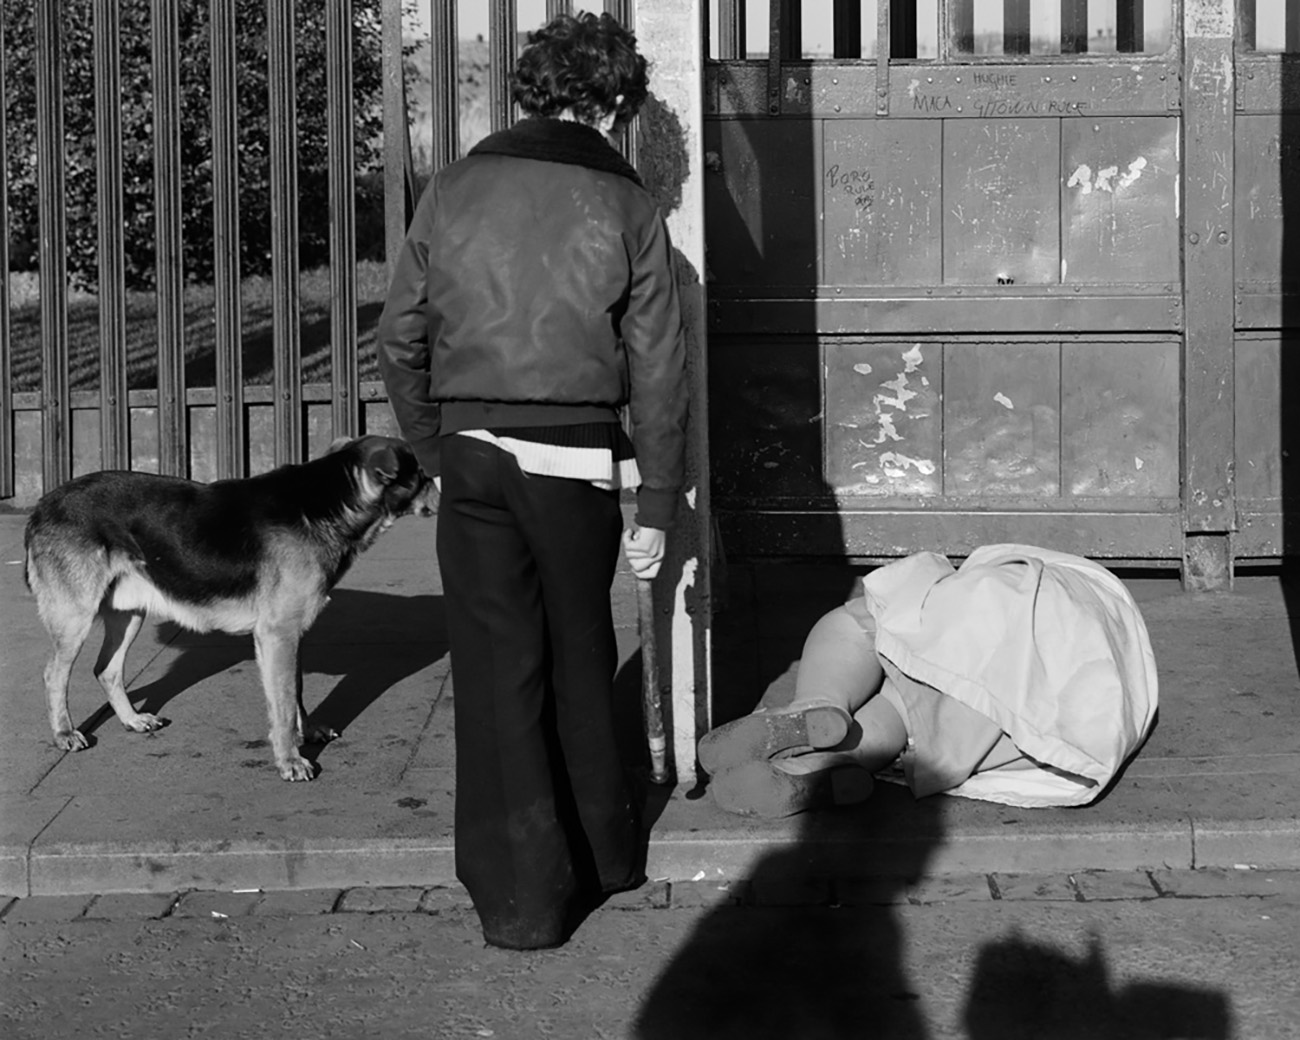 The frame of the image contains a section of a bus stop, with a person and their dog looking down on another person, in a fetal position on the floor.